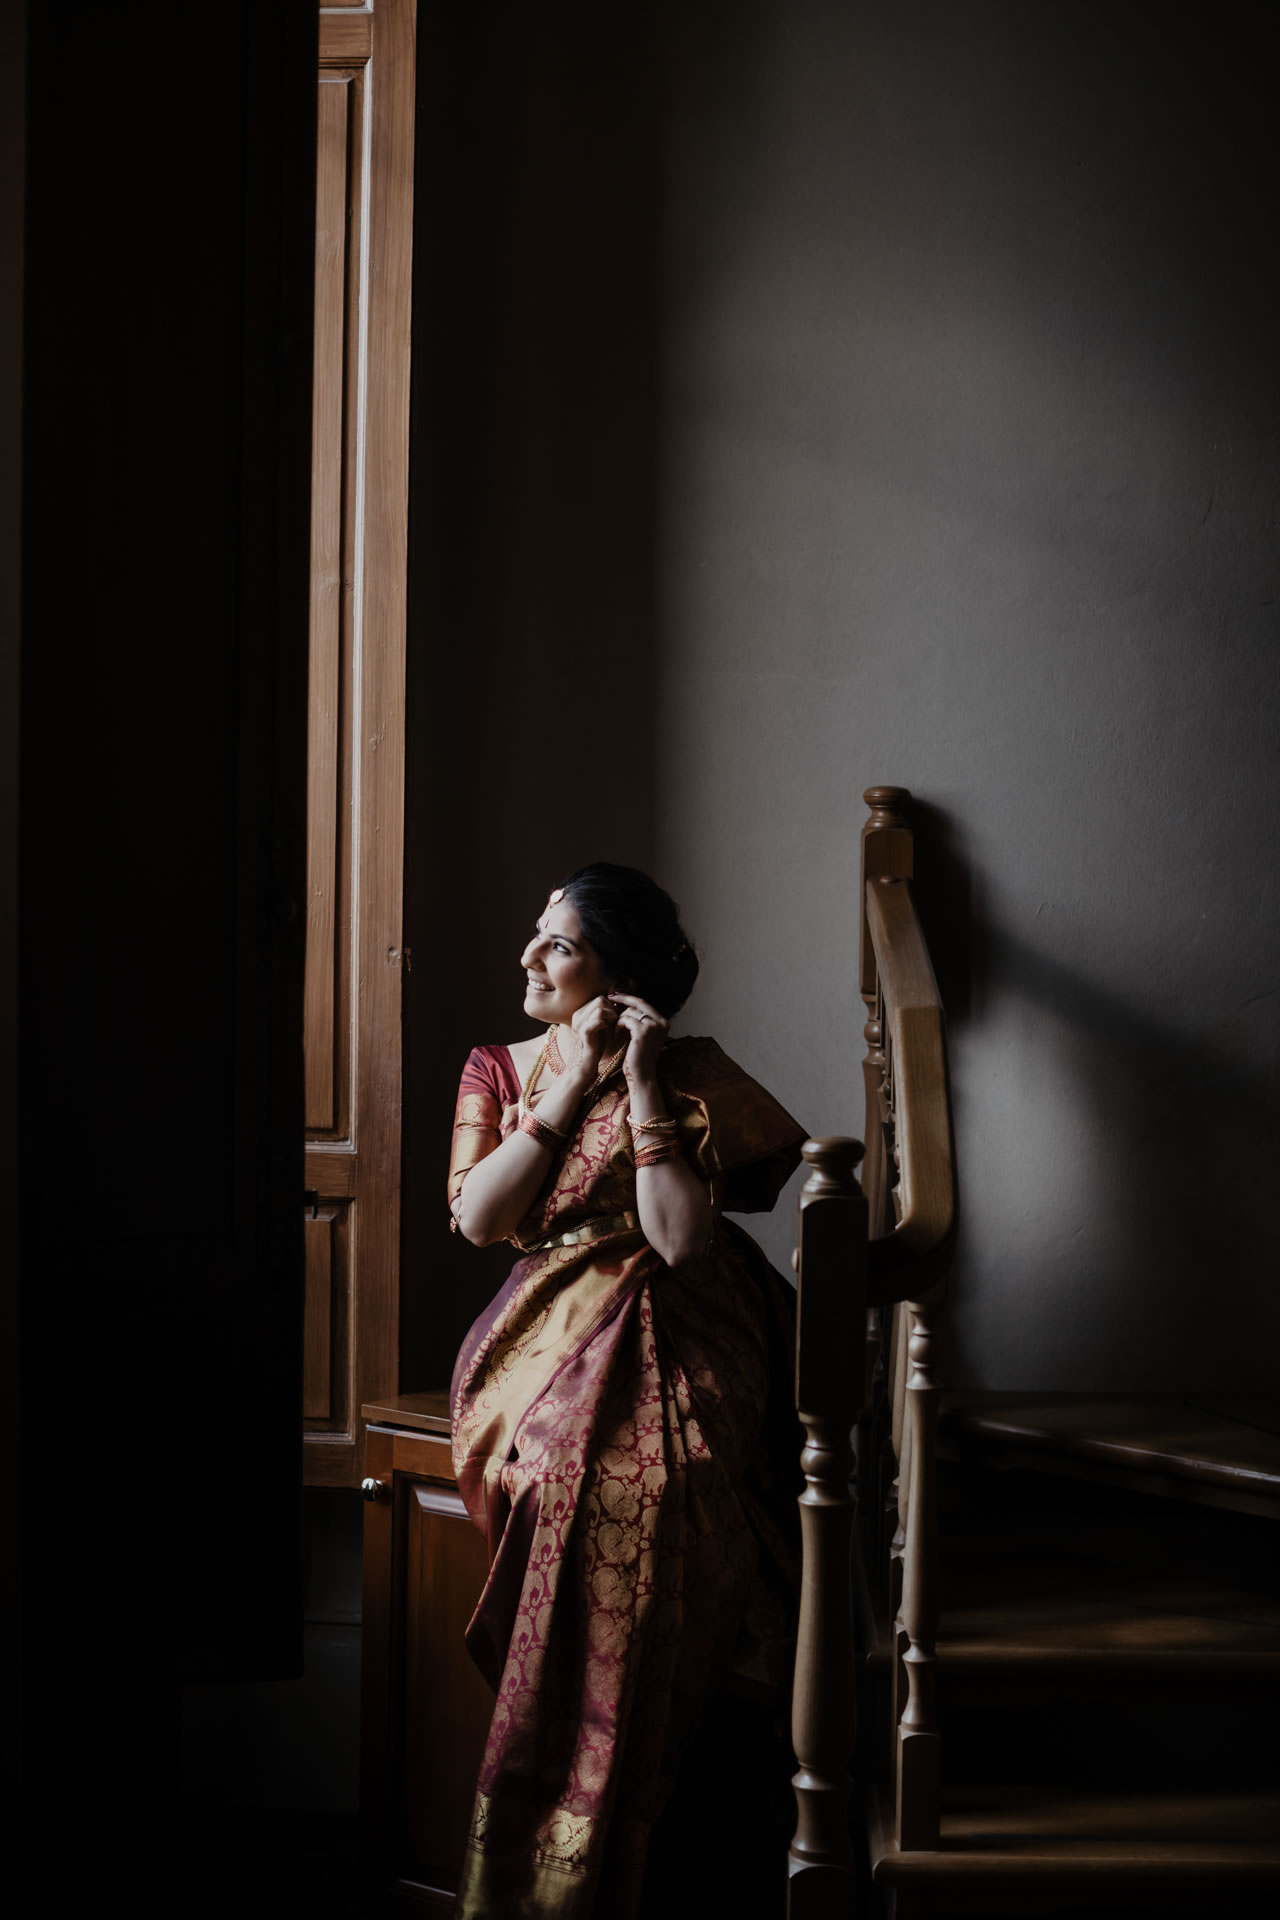 - 4 :: Indian wedding ceremony at Villa Pitiana :: Luxury wedding photography - 3 ::  - 4